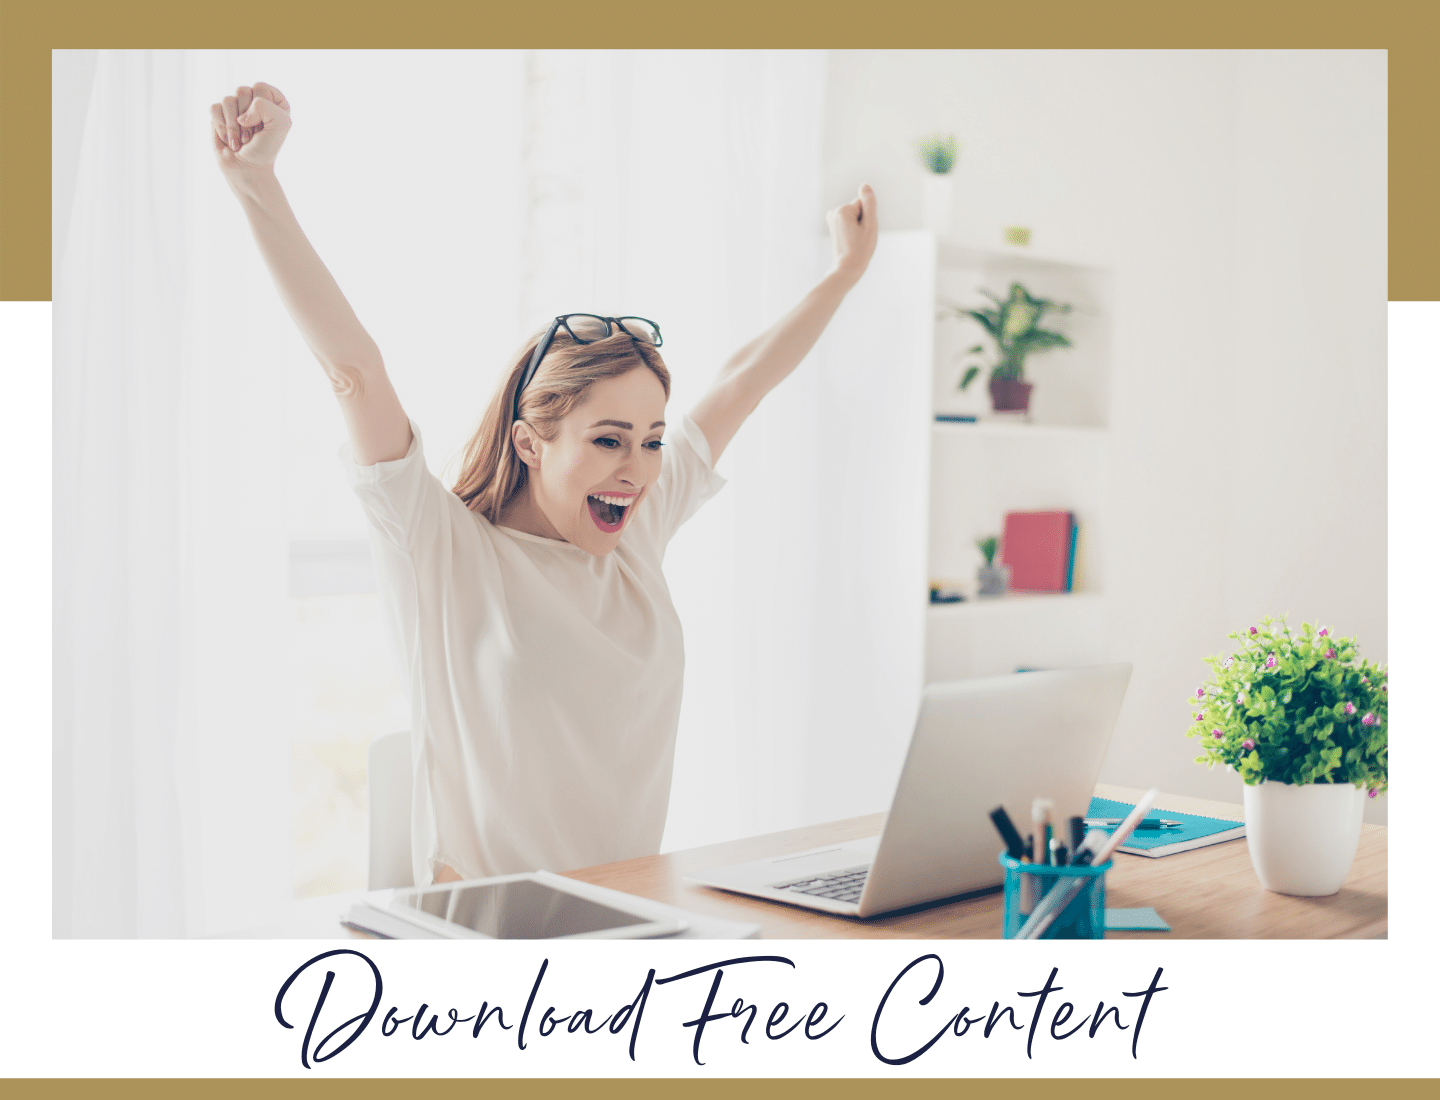 Download Free Content